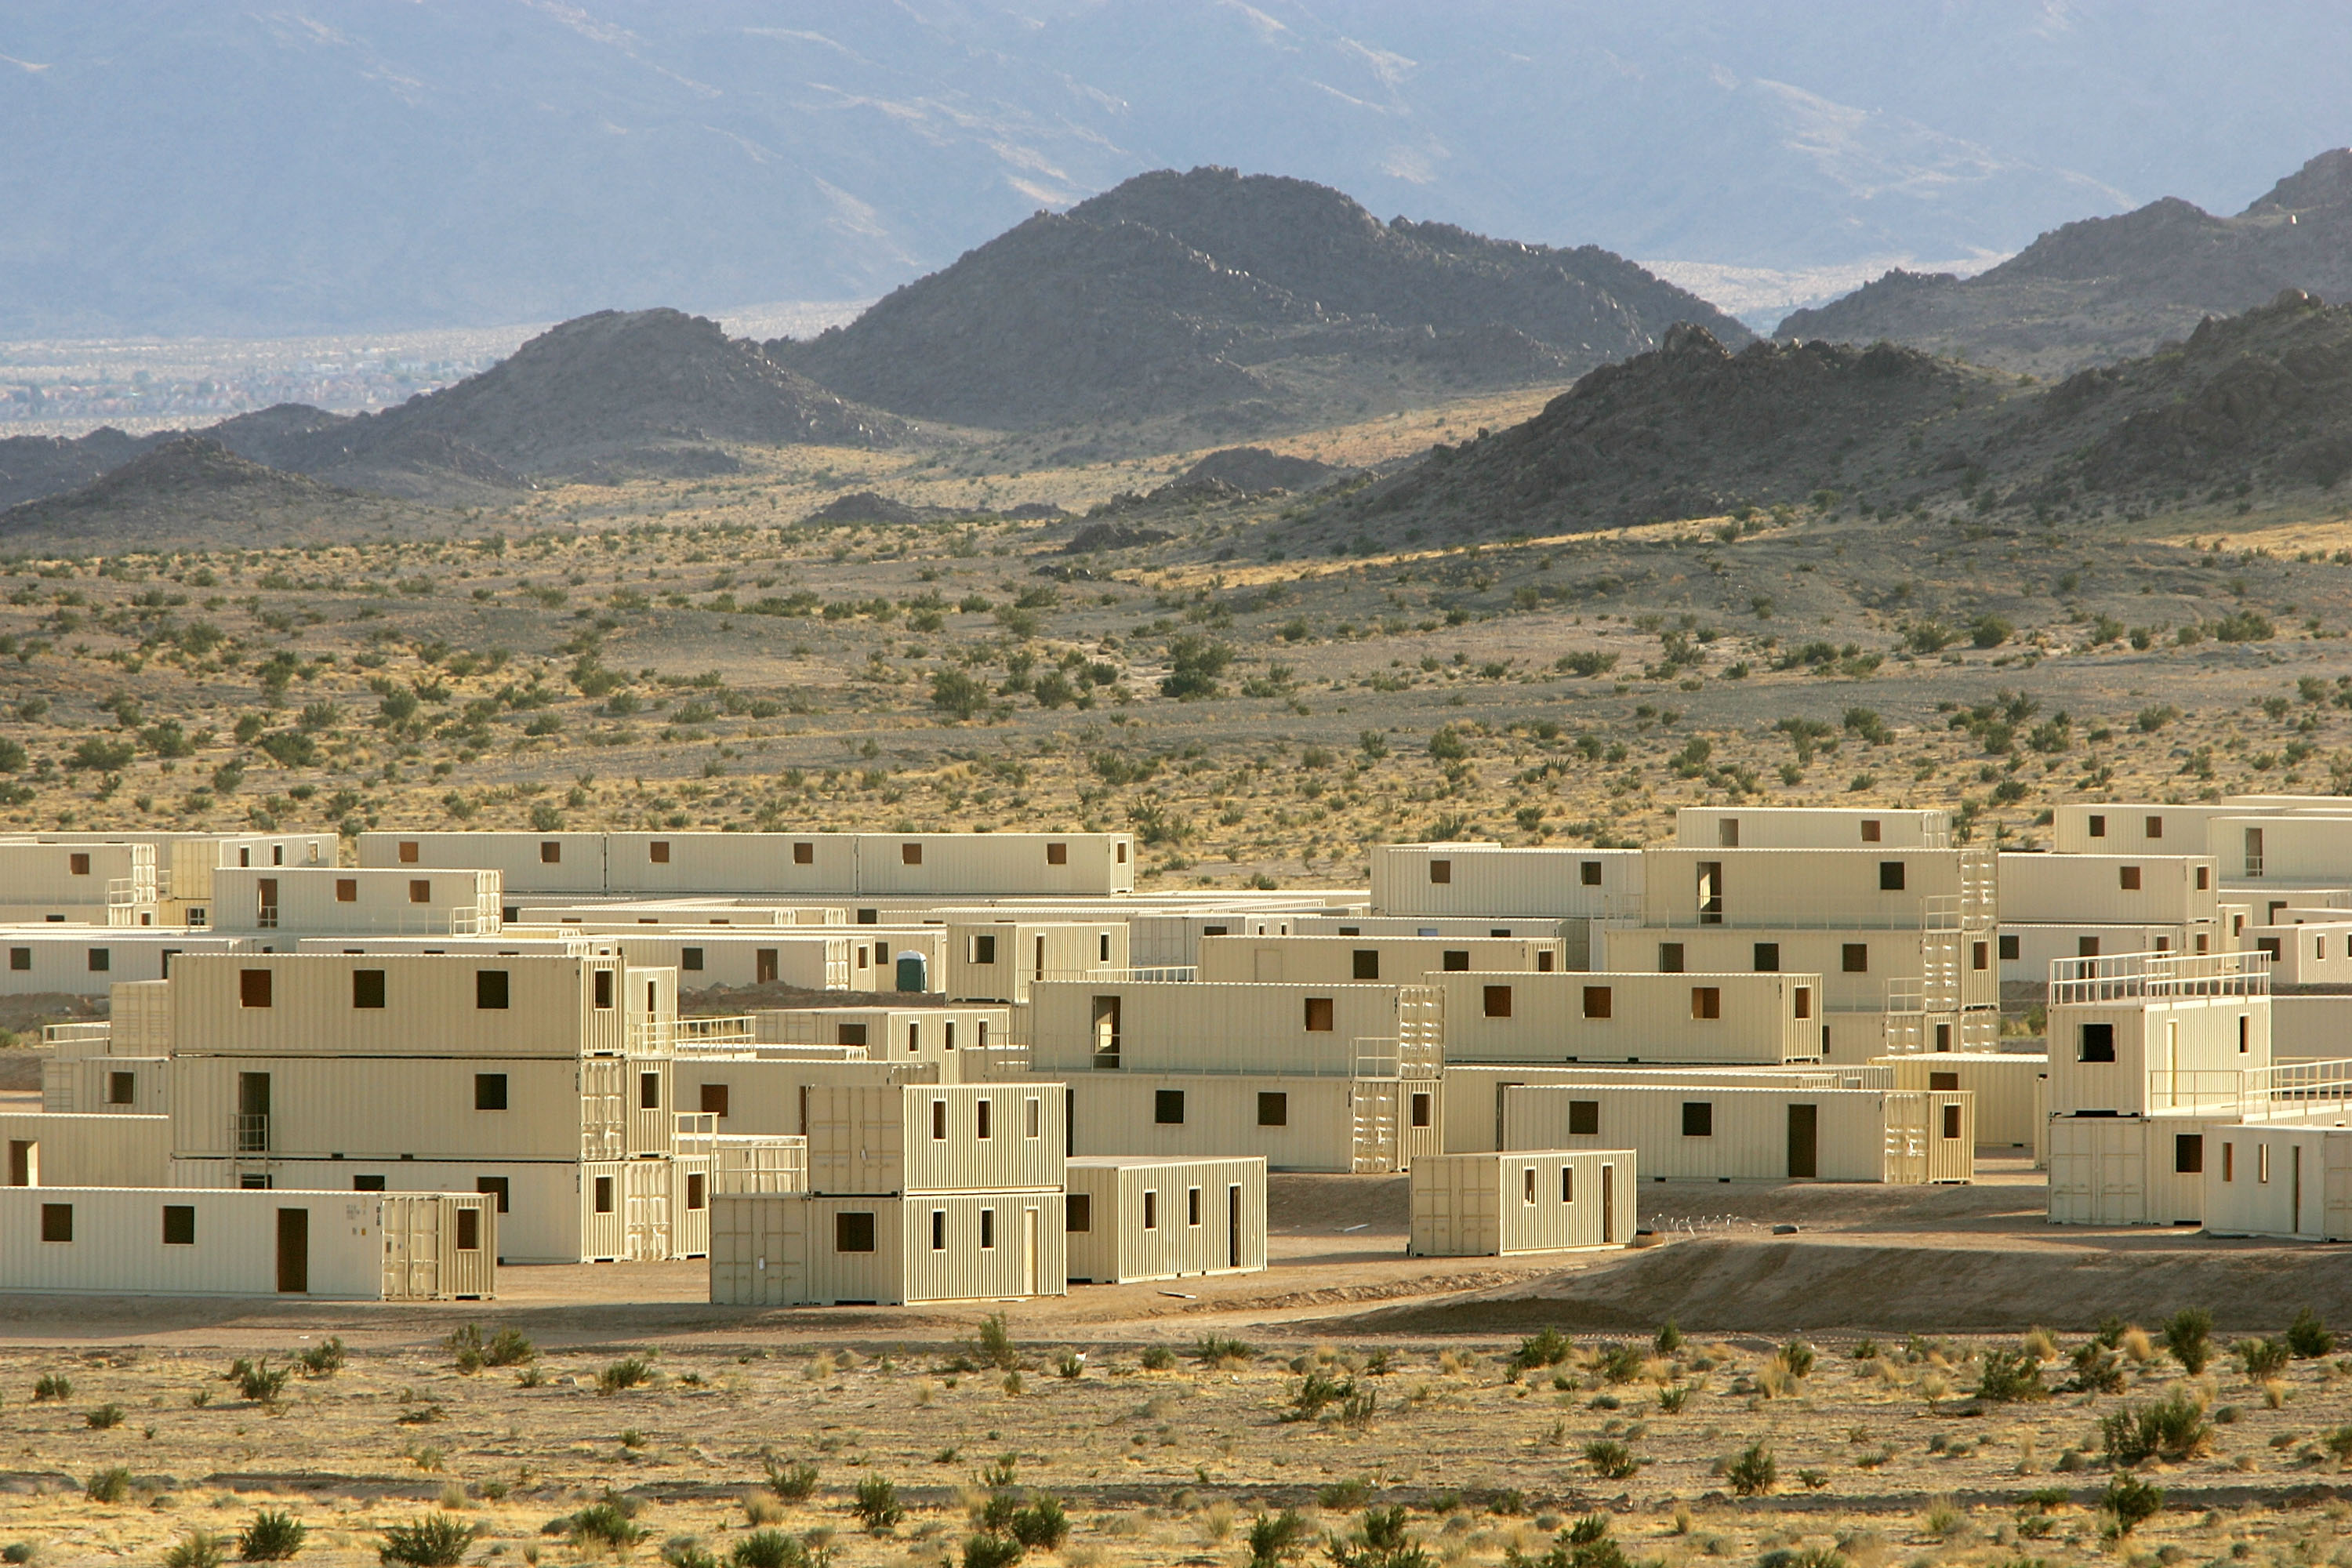 TWENTYNINE PALMS, CA - NOVEMBER 14: Range 200 simulated Iraqi village, where US marines of the First Expeditionary Force (1MEF) are training at the Twentynine Palms Marine Base, is seen on November 14, 2005 near Twentynine Palms, California. The marines have turned shipping containers into simulated Iraqi villages on Ranges 200 and 215 to train their fighters in an urban environment similar to that which they will be deployed to in Iraq. The Marines will be conducting Stability and Support Operations next year in Iraq with emphasis on training and mentoring Iraqi Security Forces. (Photo by David McNew/Getty Images)